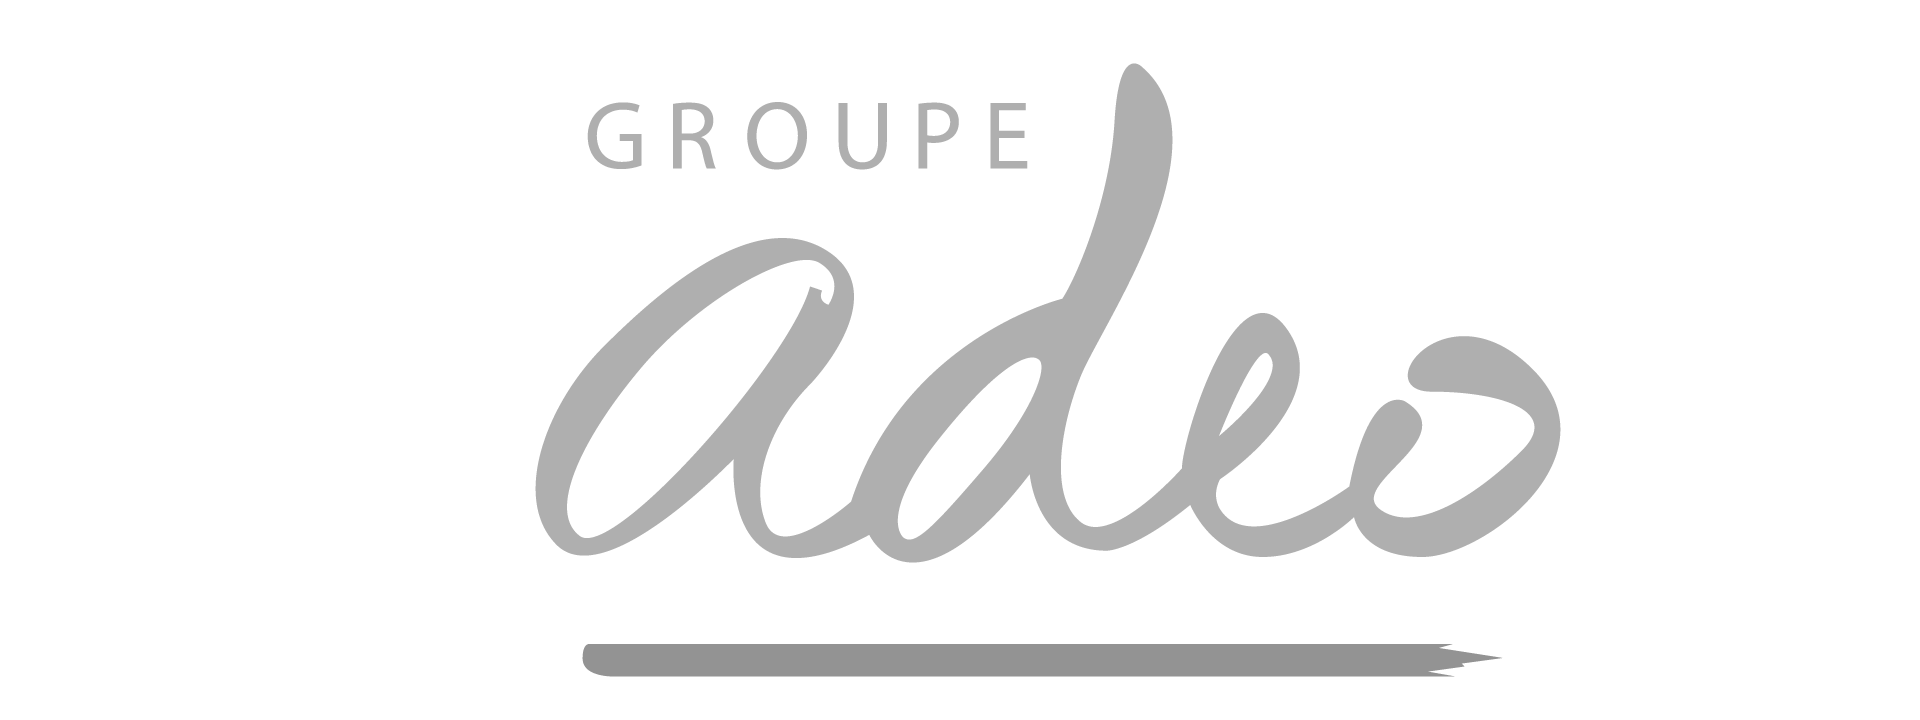 Groupe Adeo@2x.png